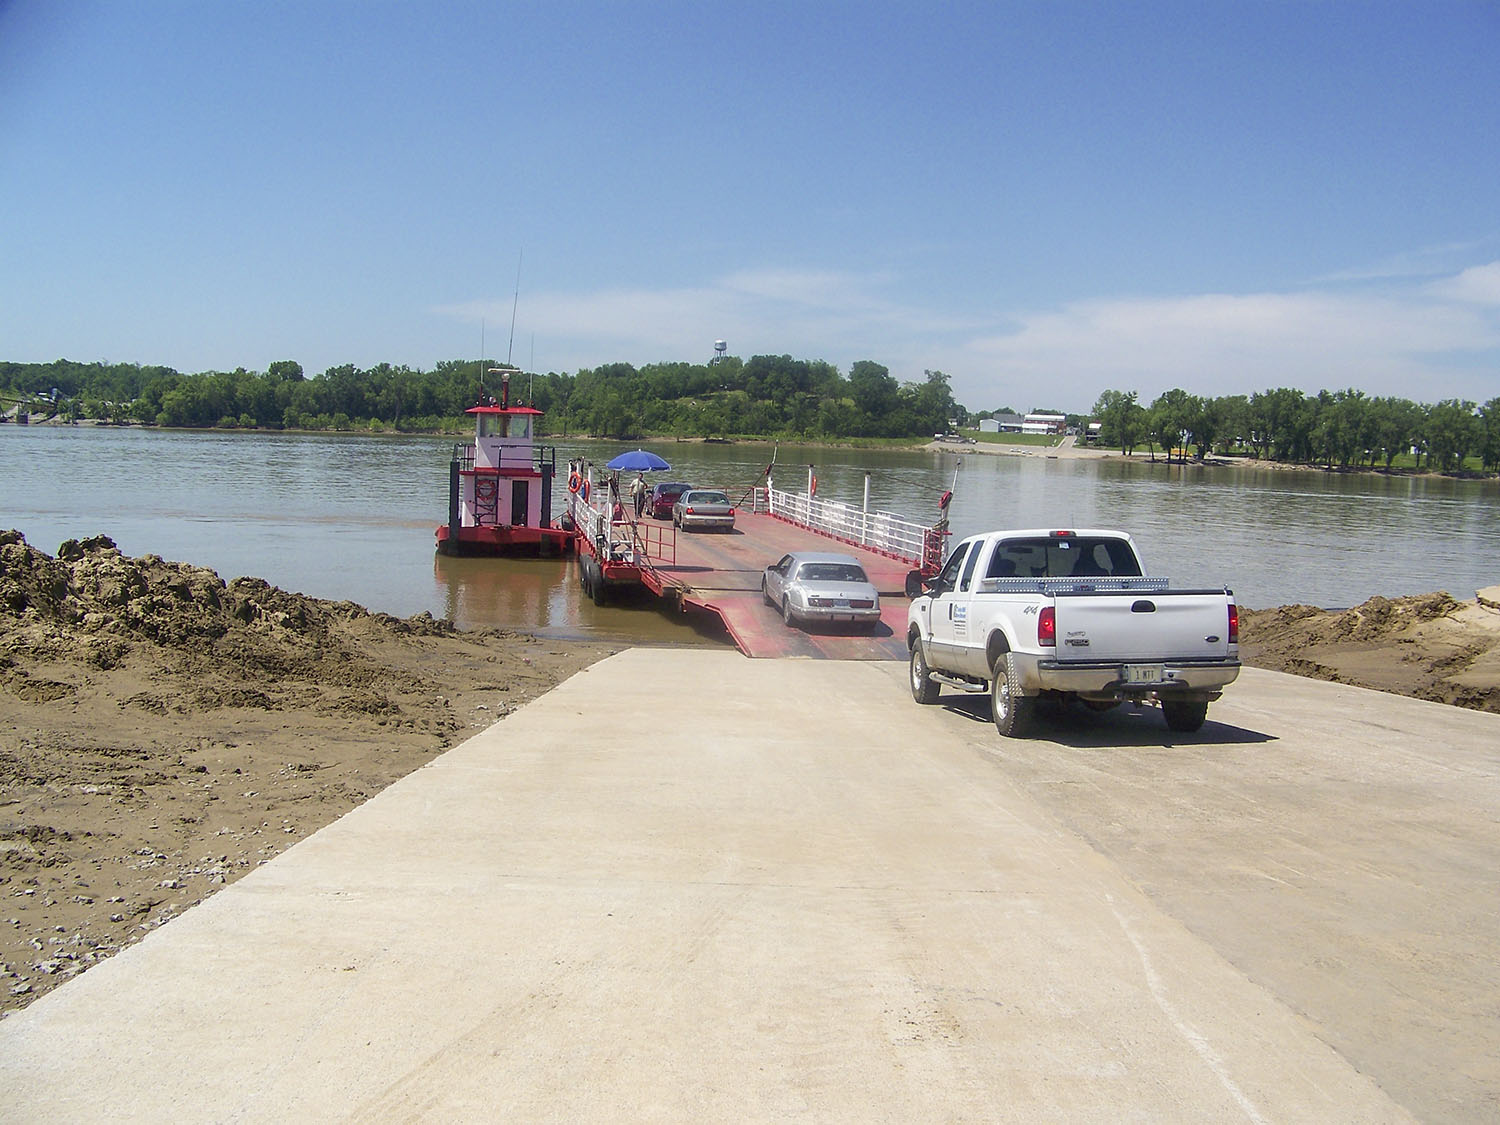 The Cave-In-Rock Ferry crosses the Ohio River at Mile 881.0.